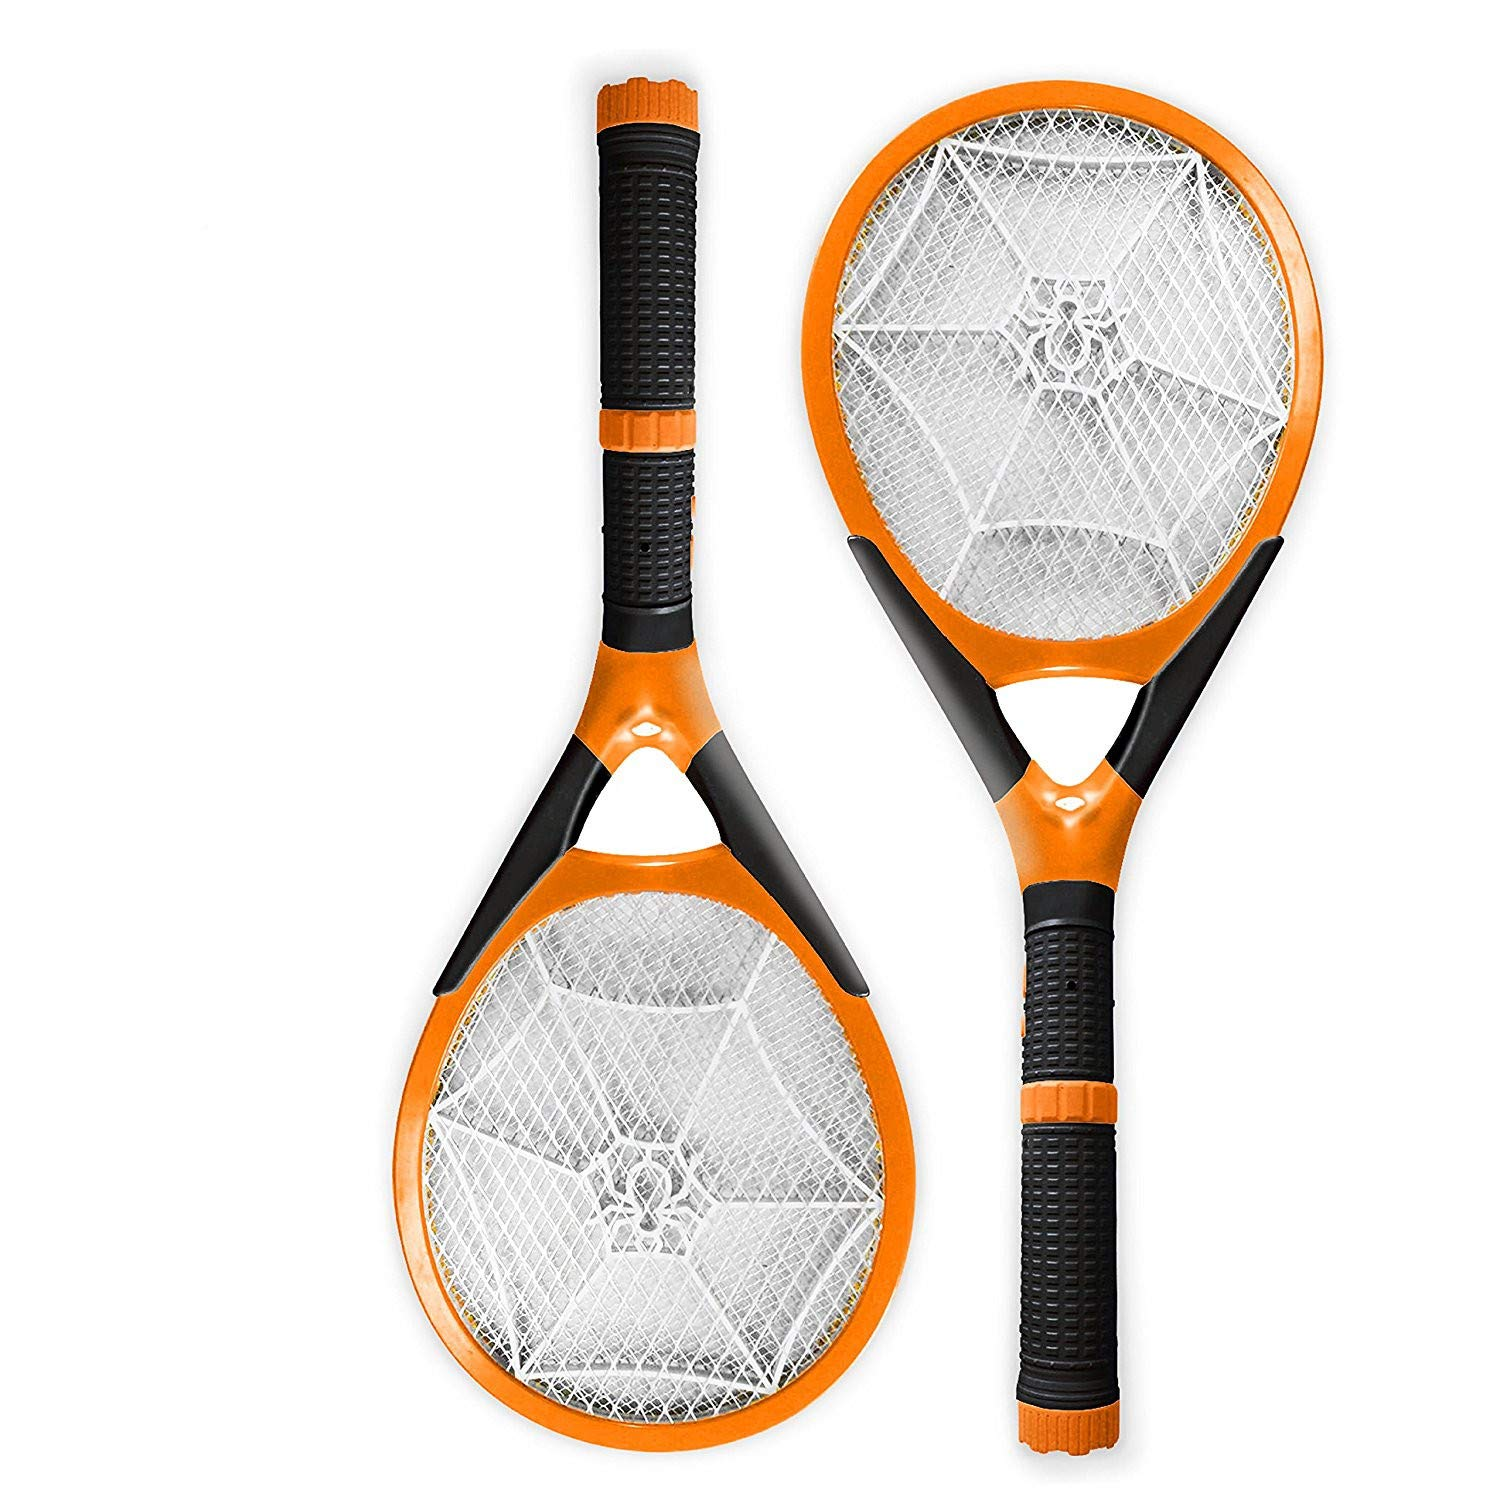 Aspectek Fly Zapper by Rechargeable Handheld Insect Zapper for Mosquitos, Flies, Wasps - Detachable Flash Light